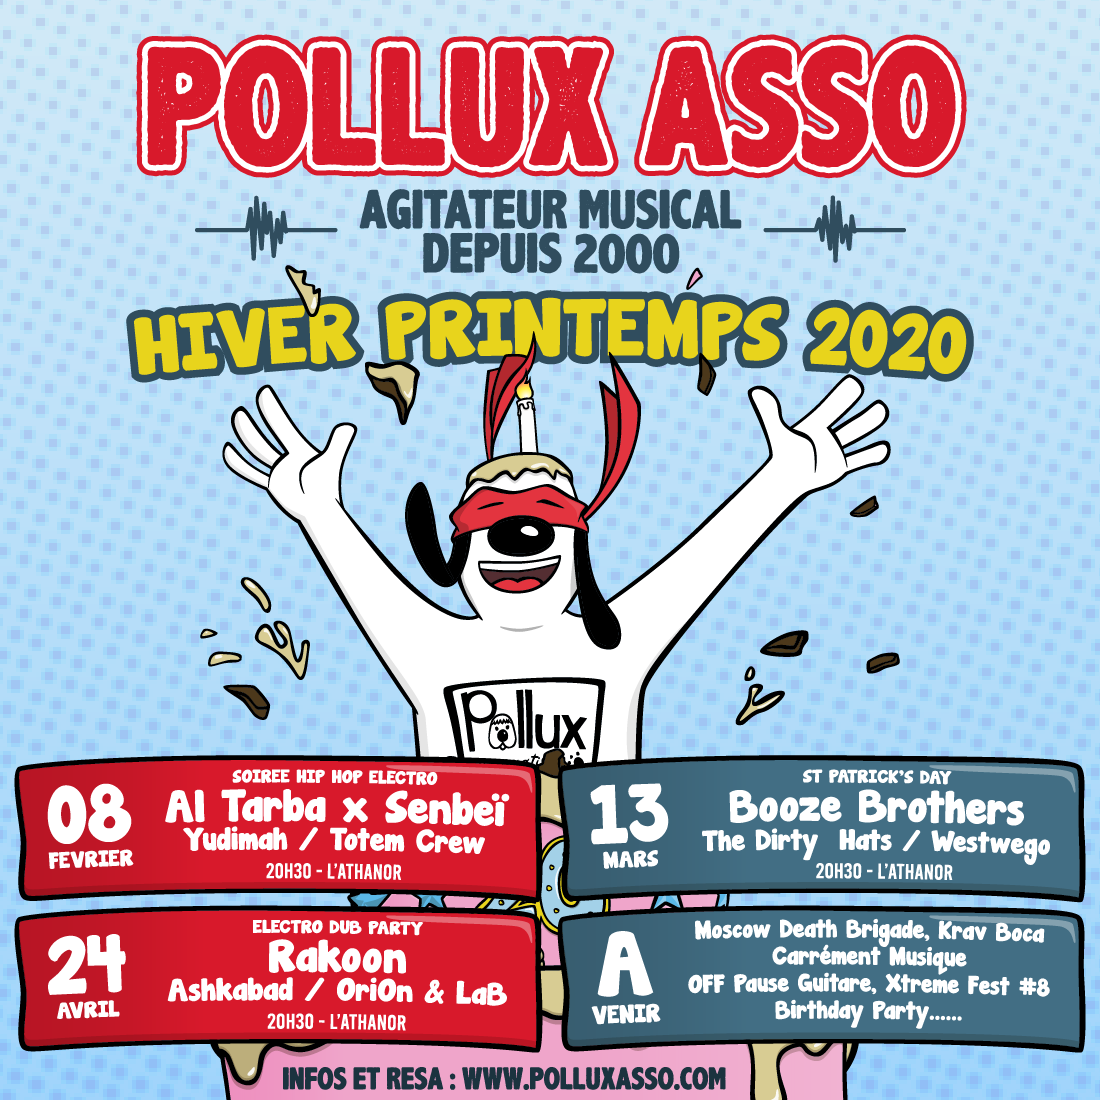 Programmation Hiver printemps 2020 concerts Pollux association